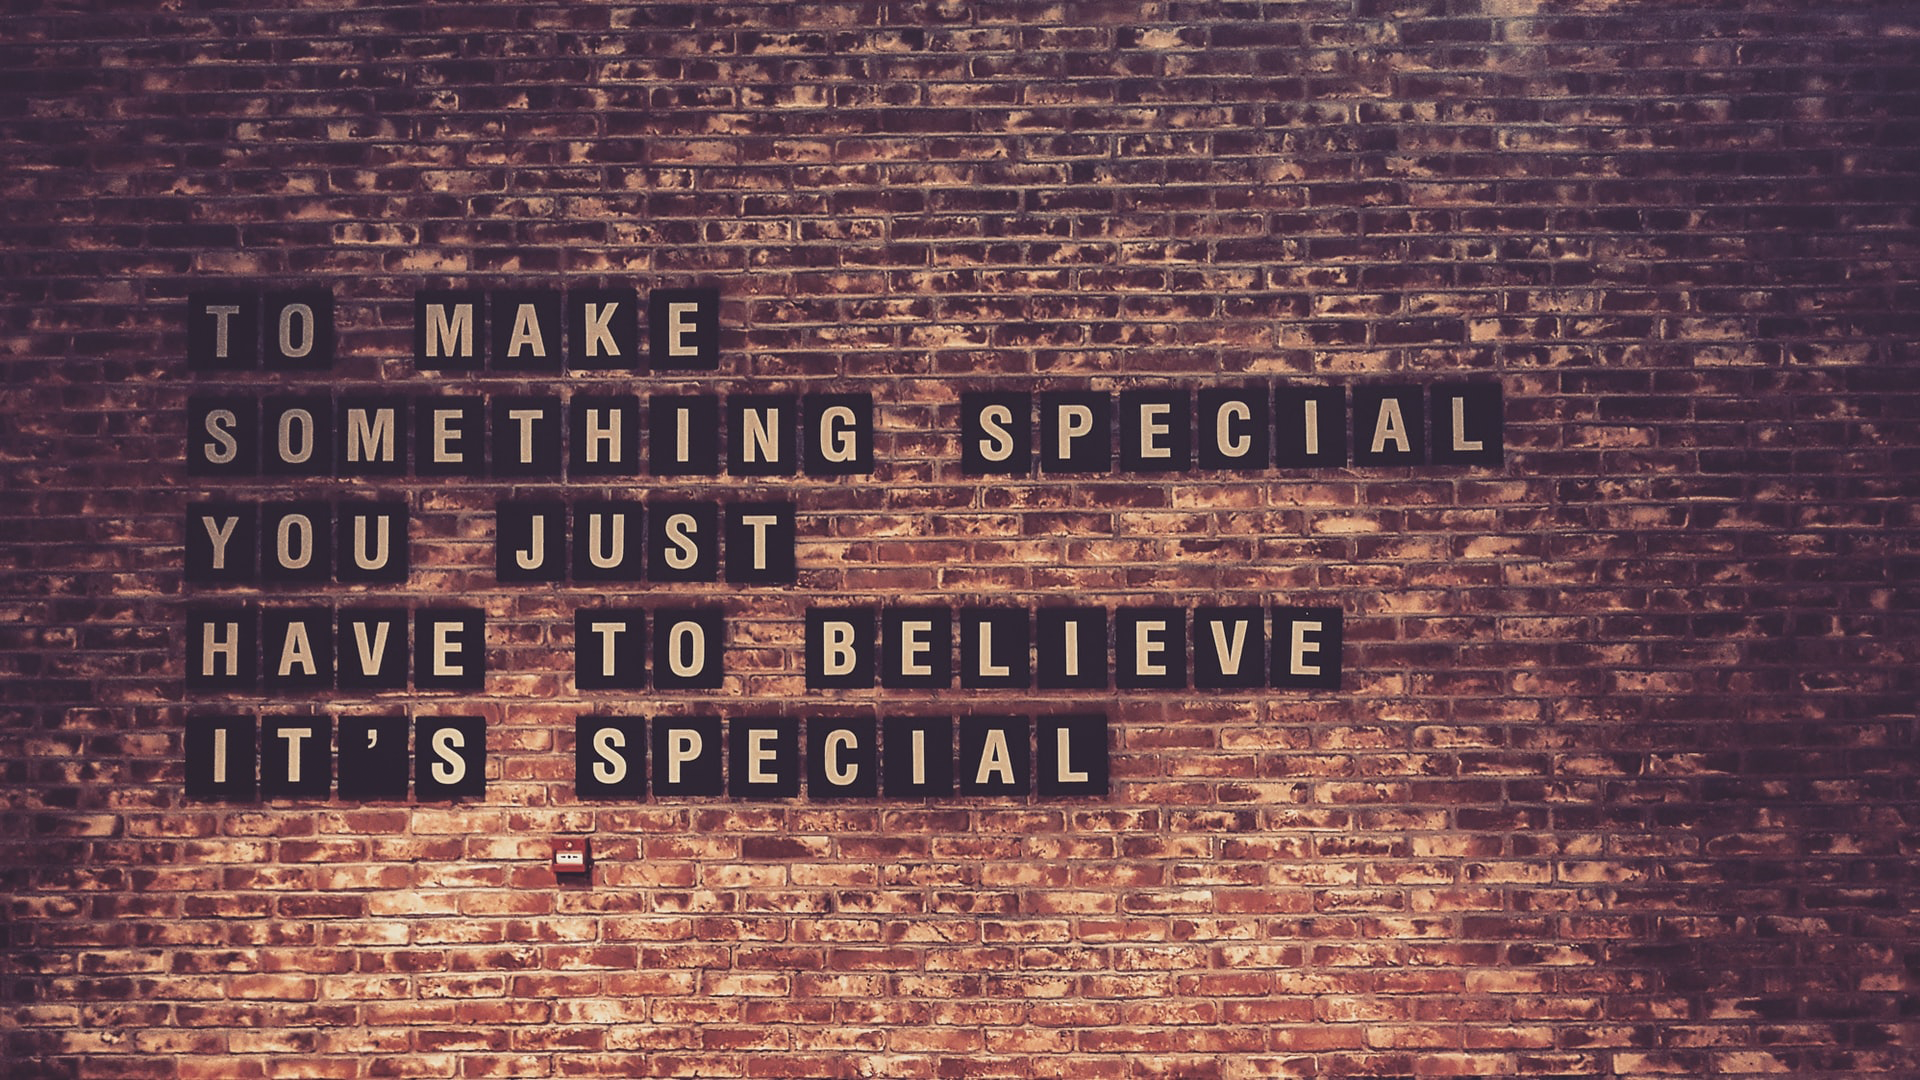 To Make Something Special You Just Have To Believe Its Special